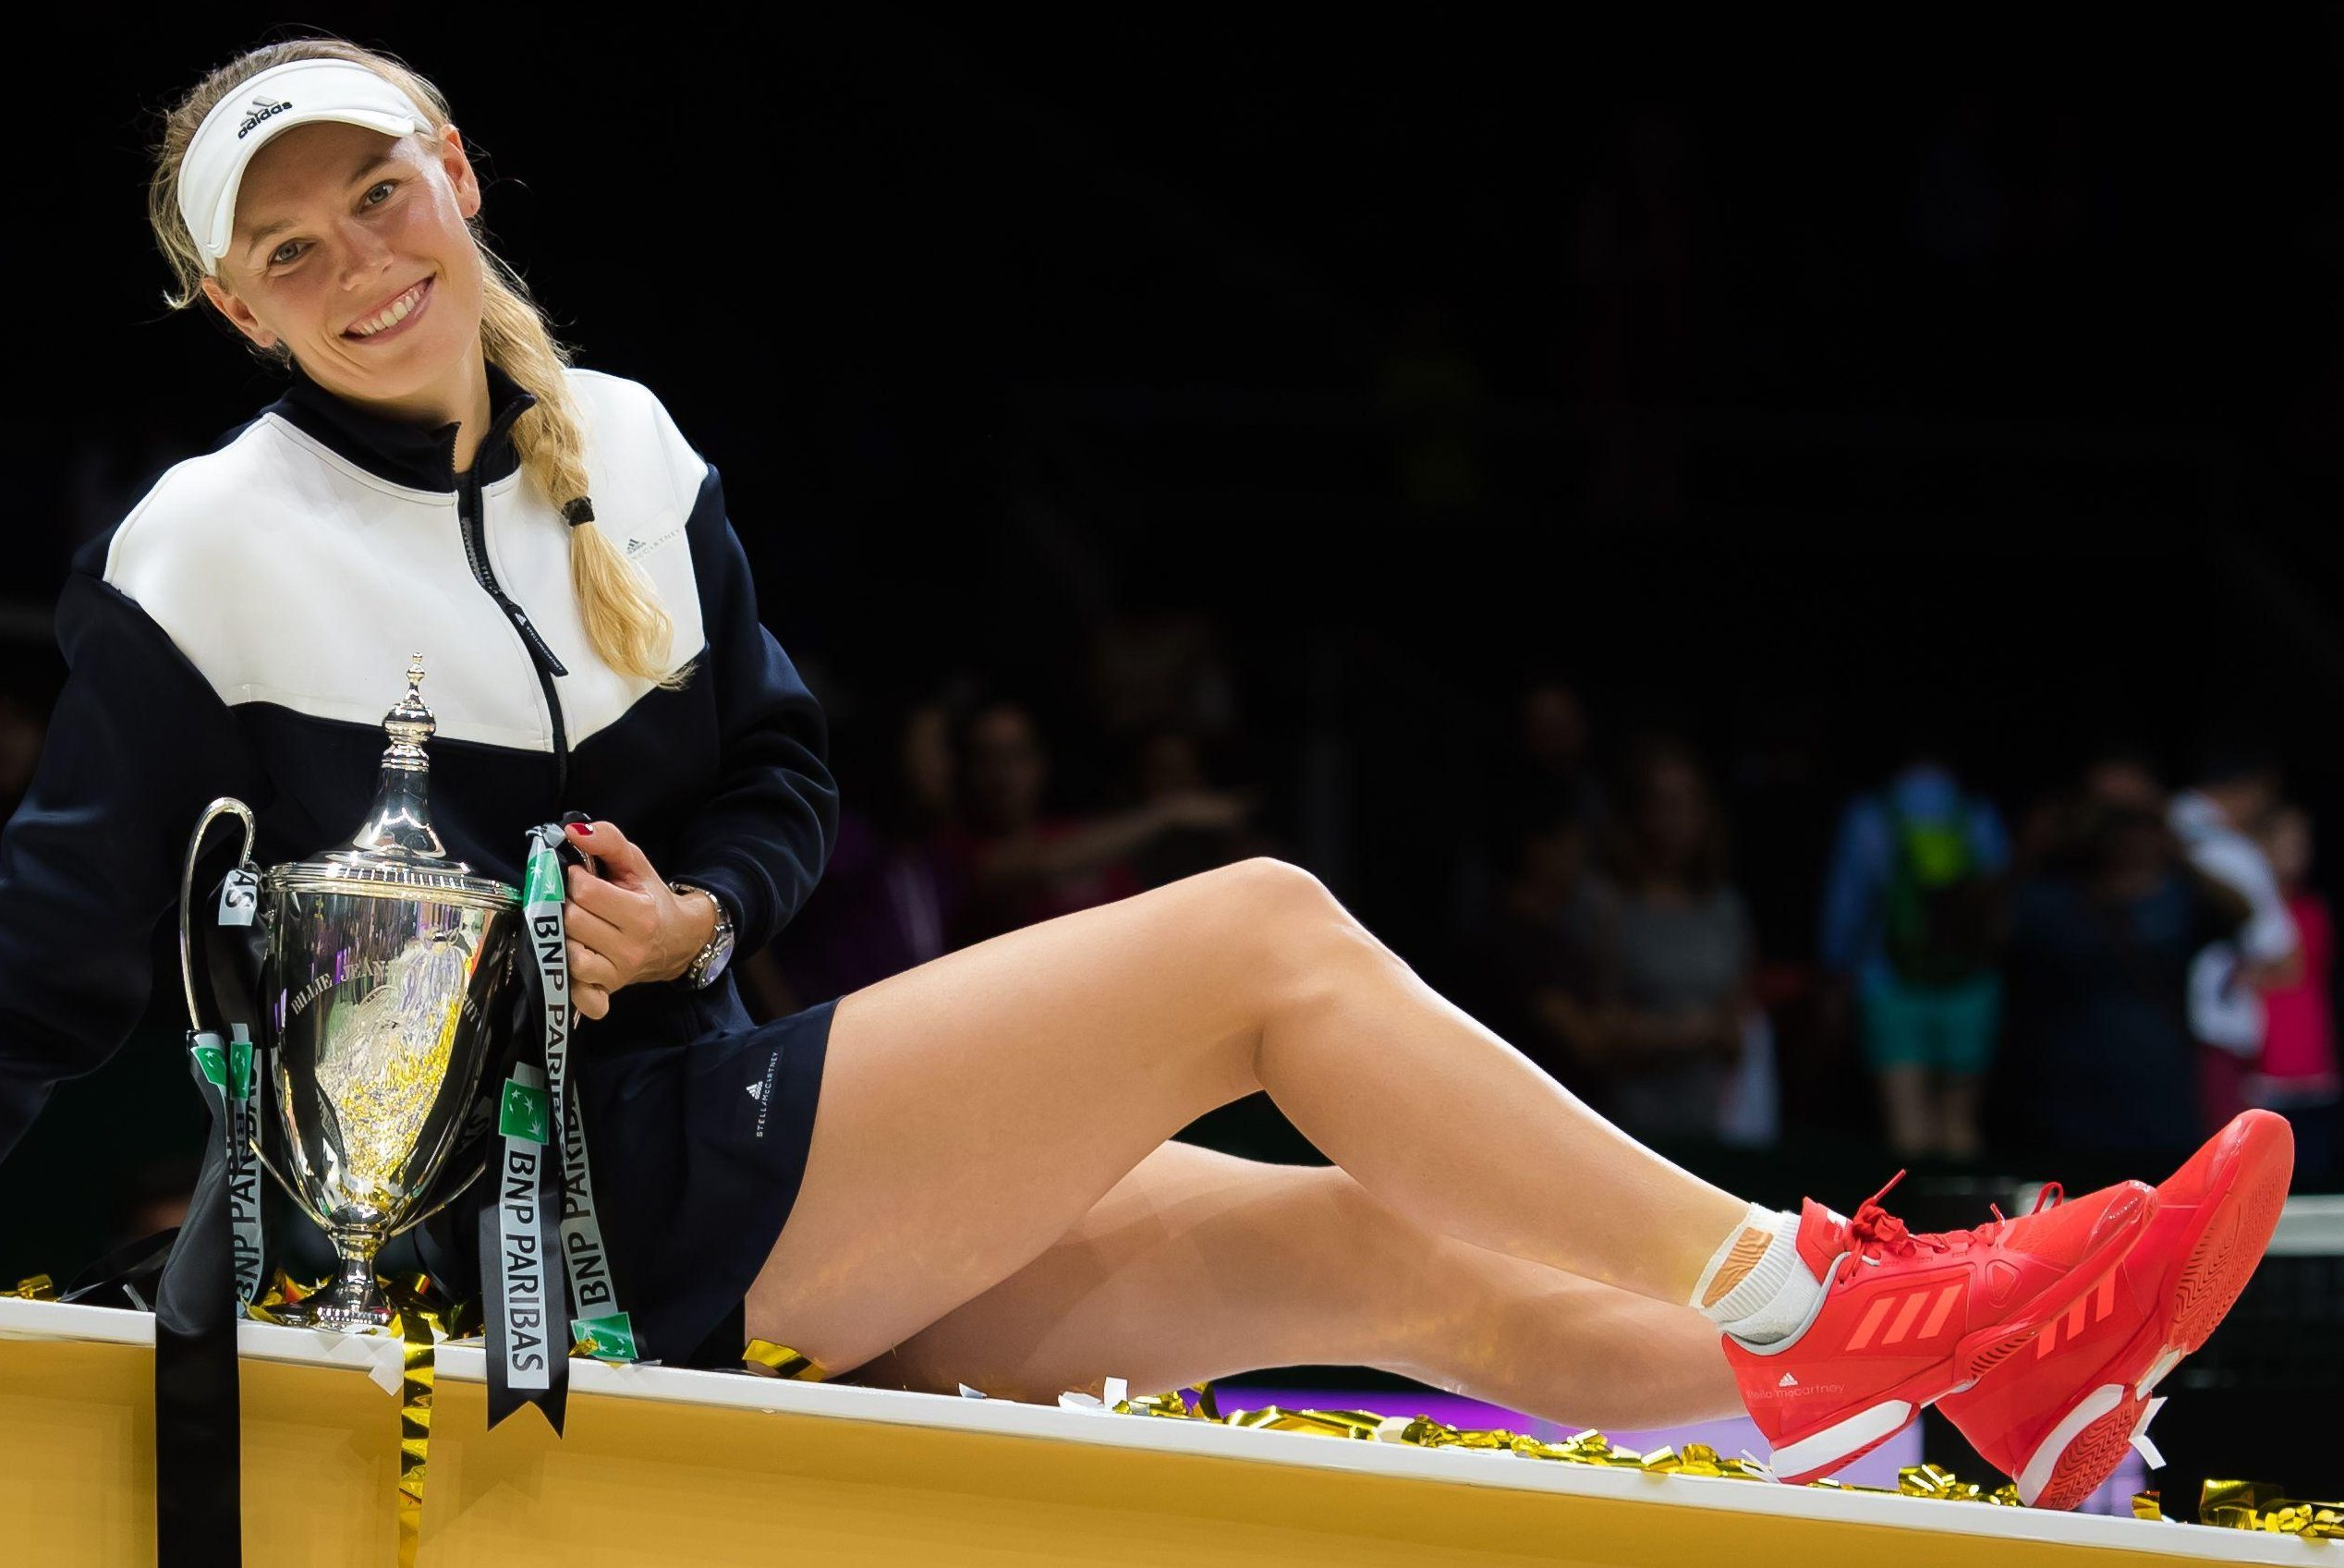 Caroline Wozniacki relaxes with the trophy after her 2107 WTA Finals triumph